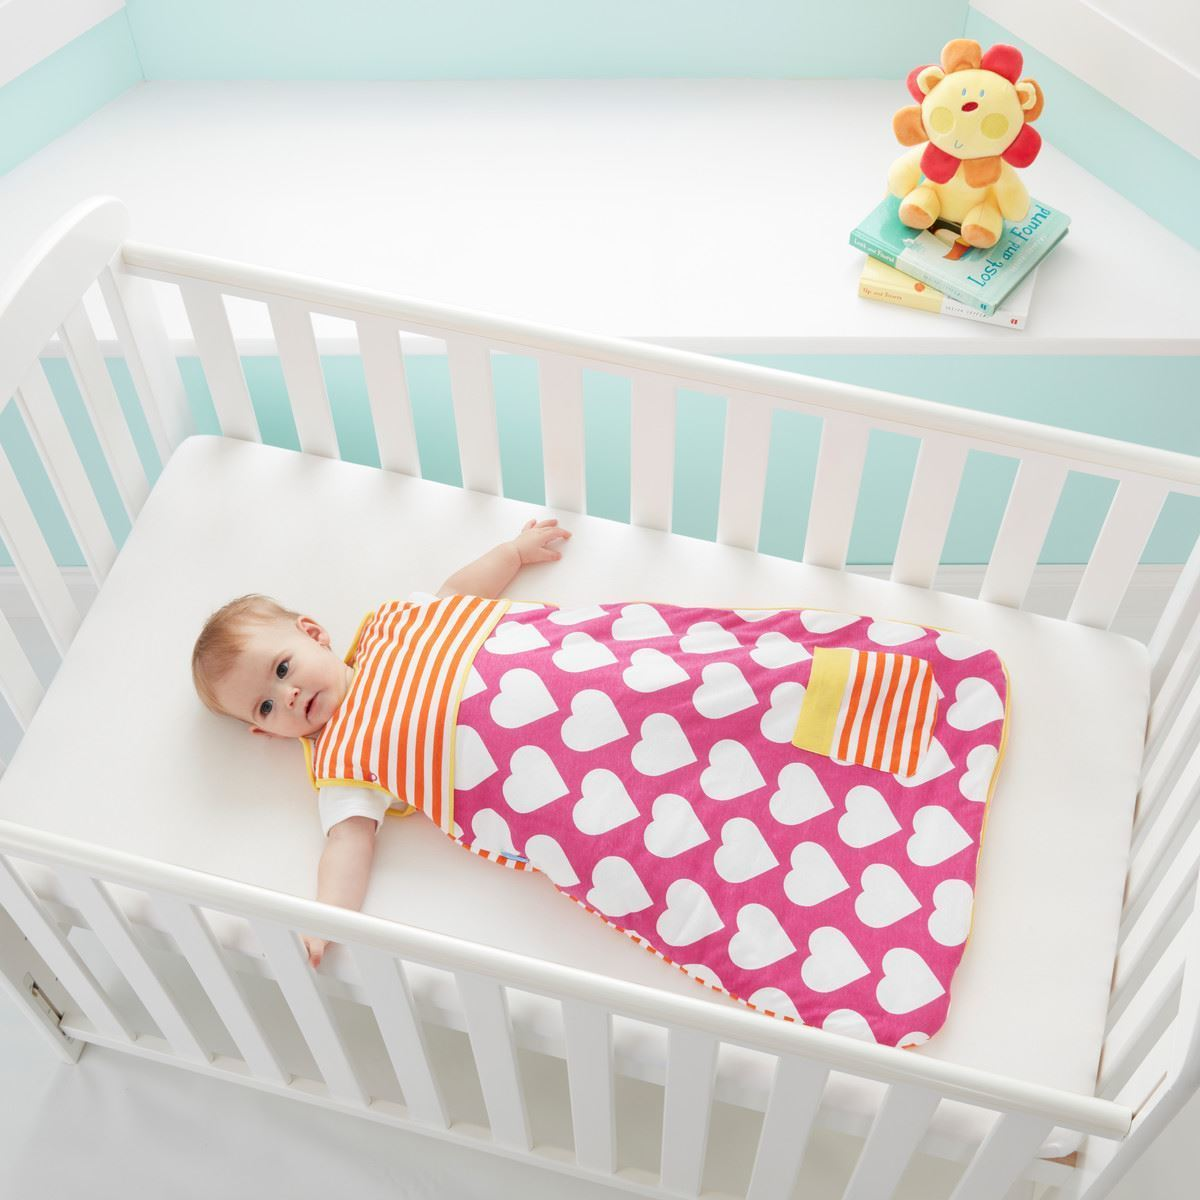 Grobag Baby Sleeping Bag 1.0 Tog In Pocketful of Love